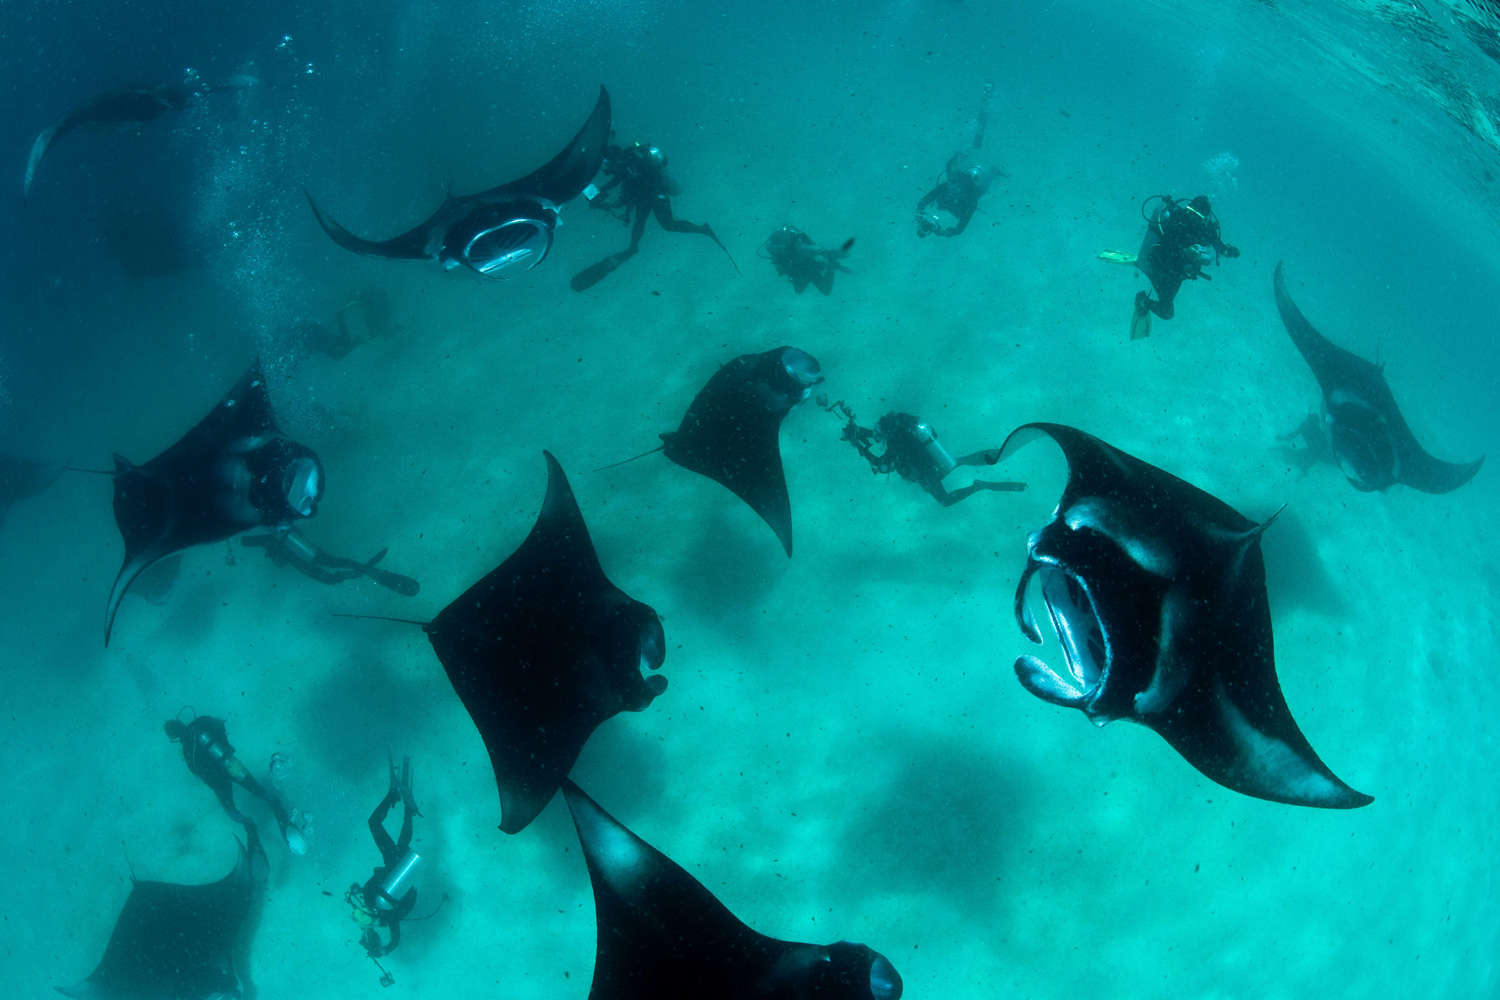 June 29, 2011. Swooping gracefully through the water like giant bats, these huge manta rays gather to feed on microscopic plankton in Manifaru Bay in the Maldives.